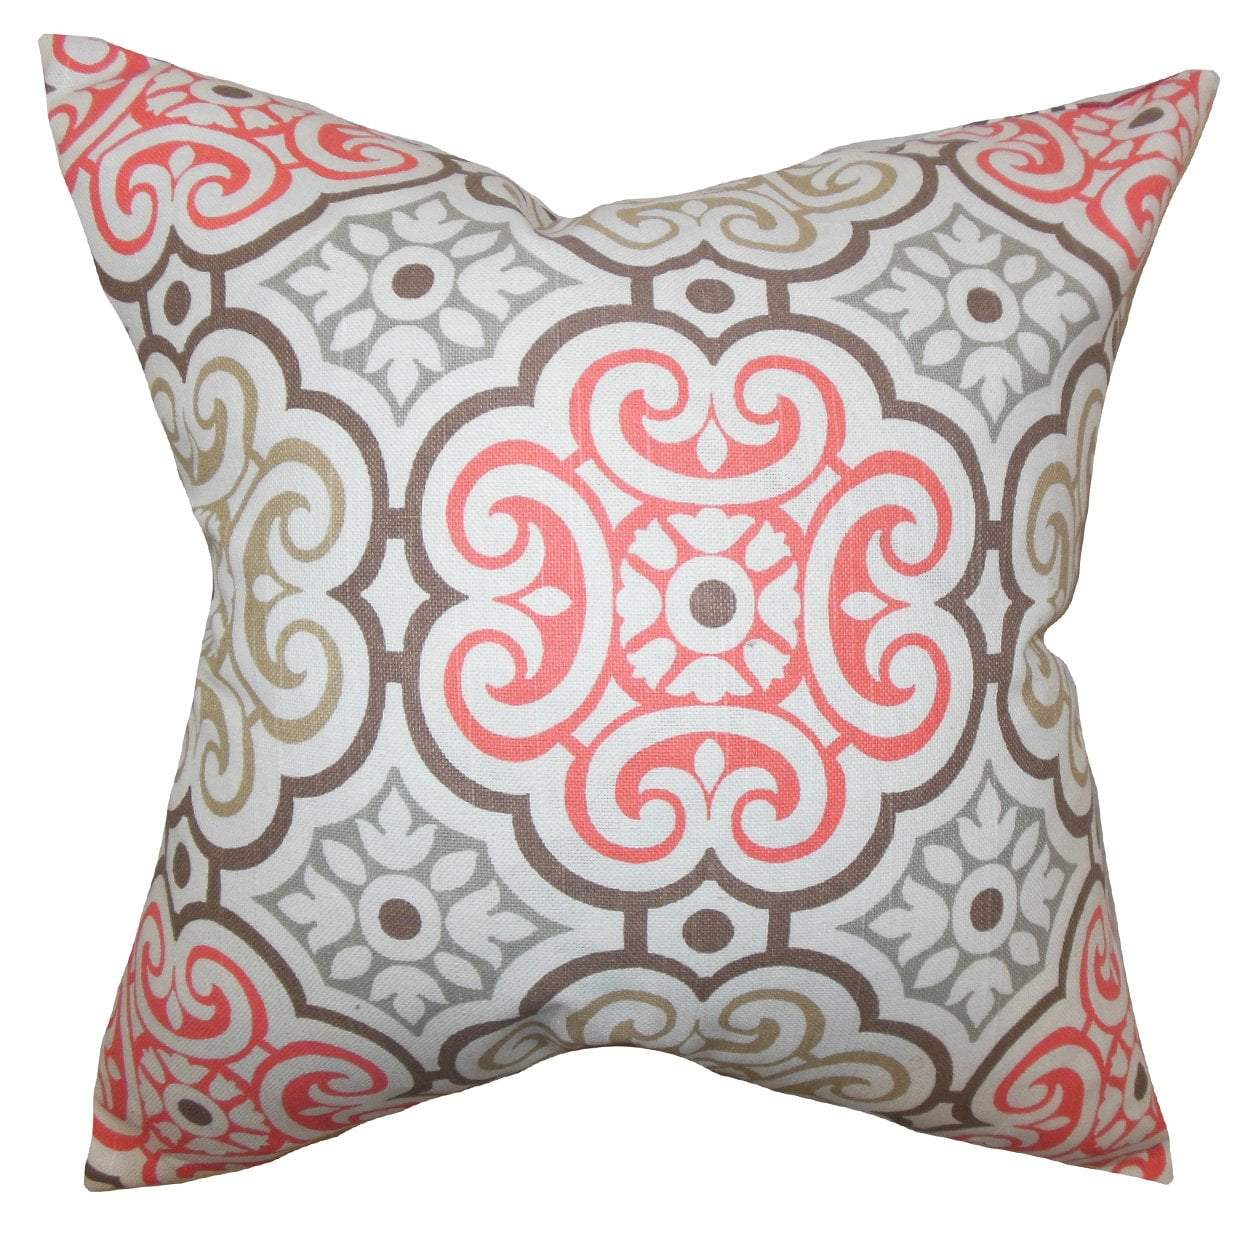 Cotton Geometric Contemporary Throw Pillow Cover